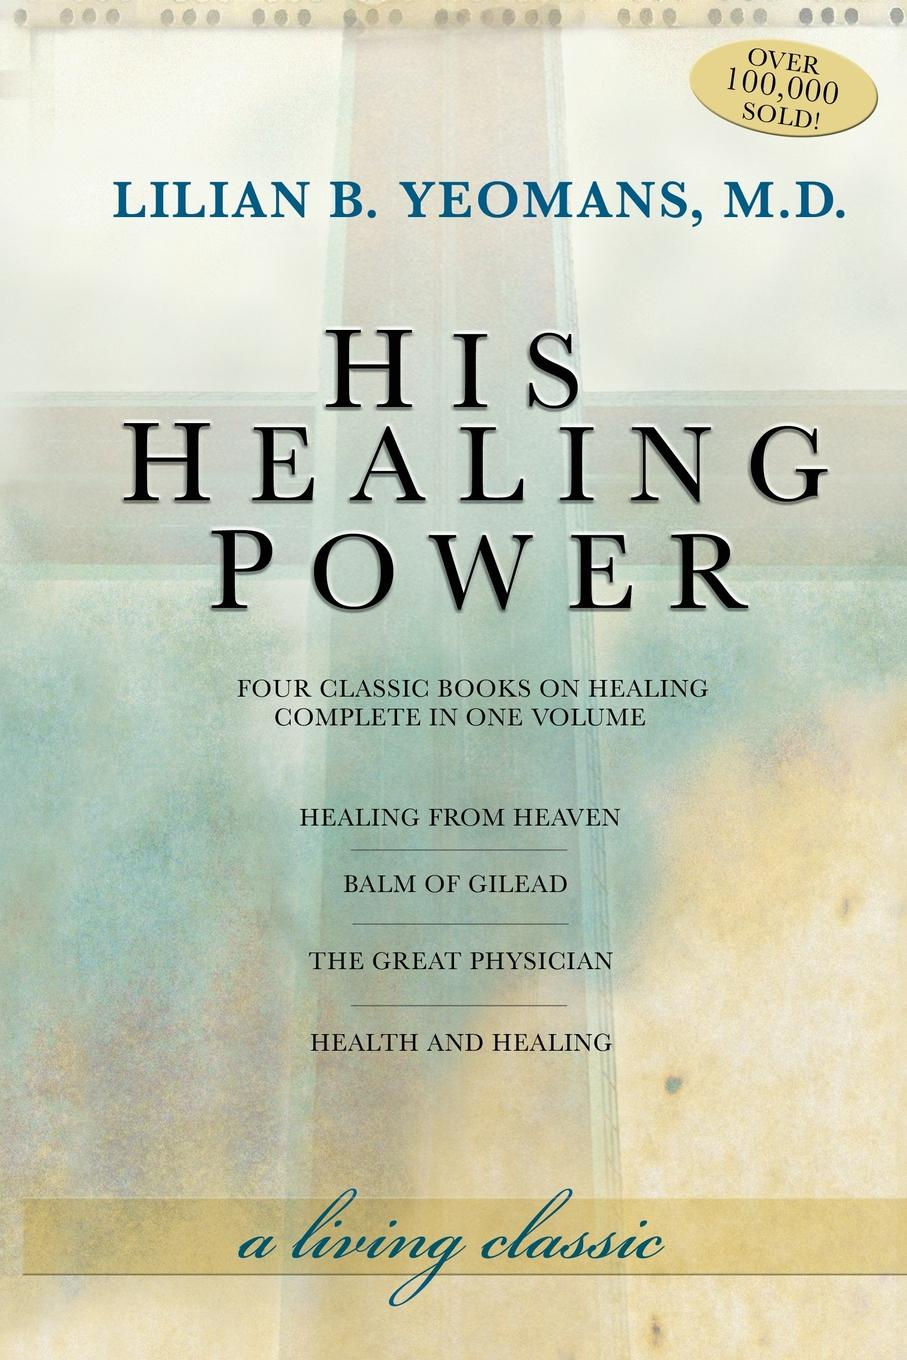 Lilian B. Yeomans His Healing Power. Four Classic Books on Healing, Complete in One Volume